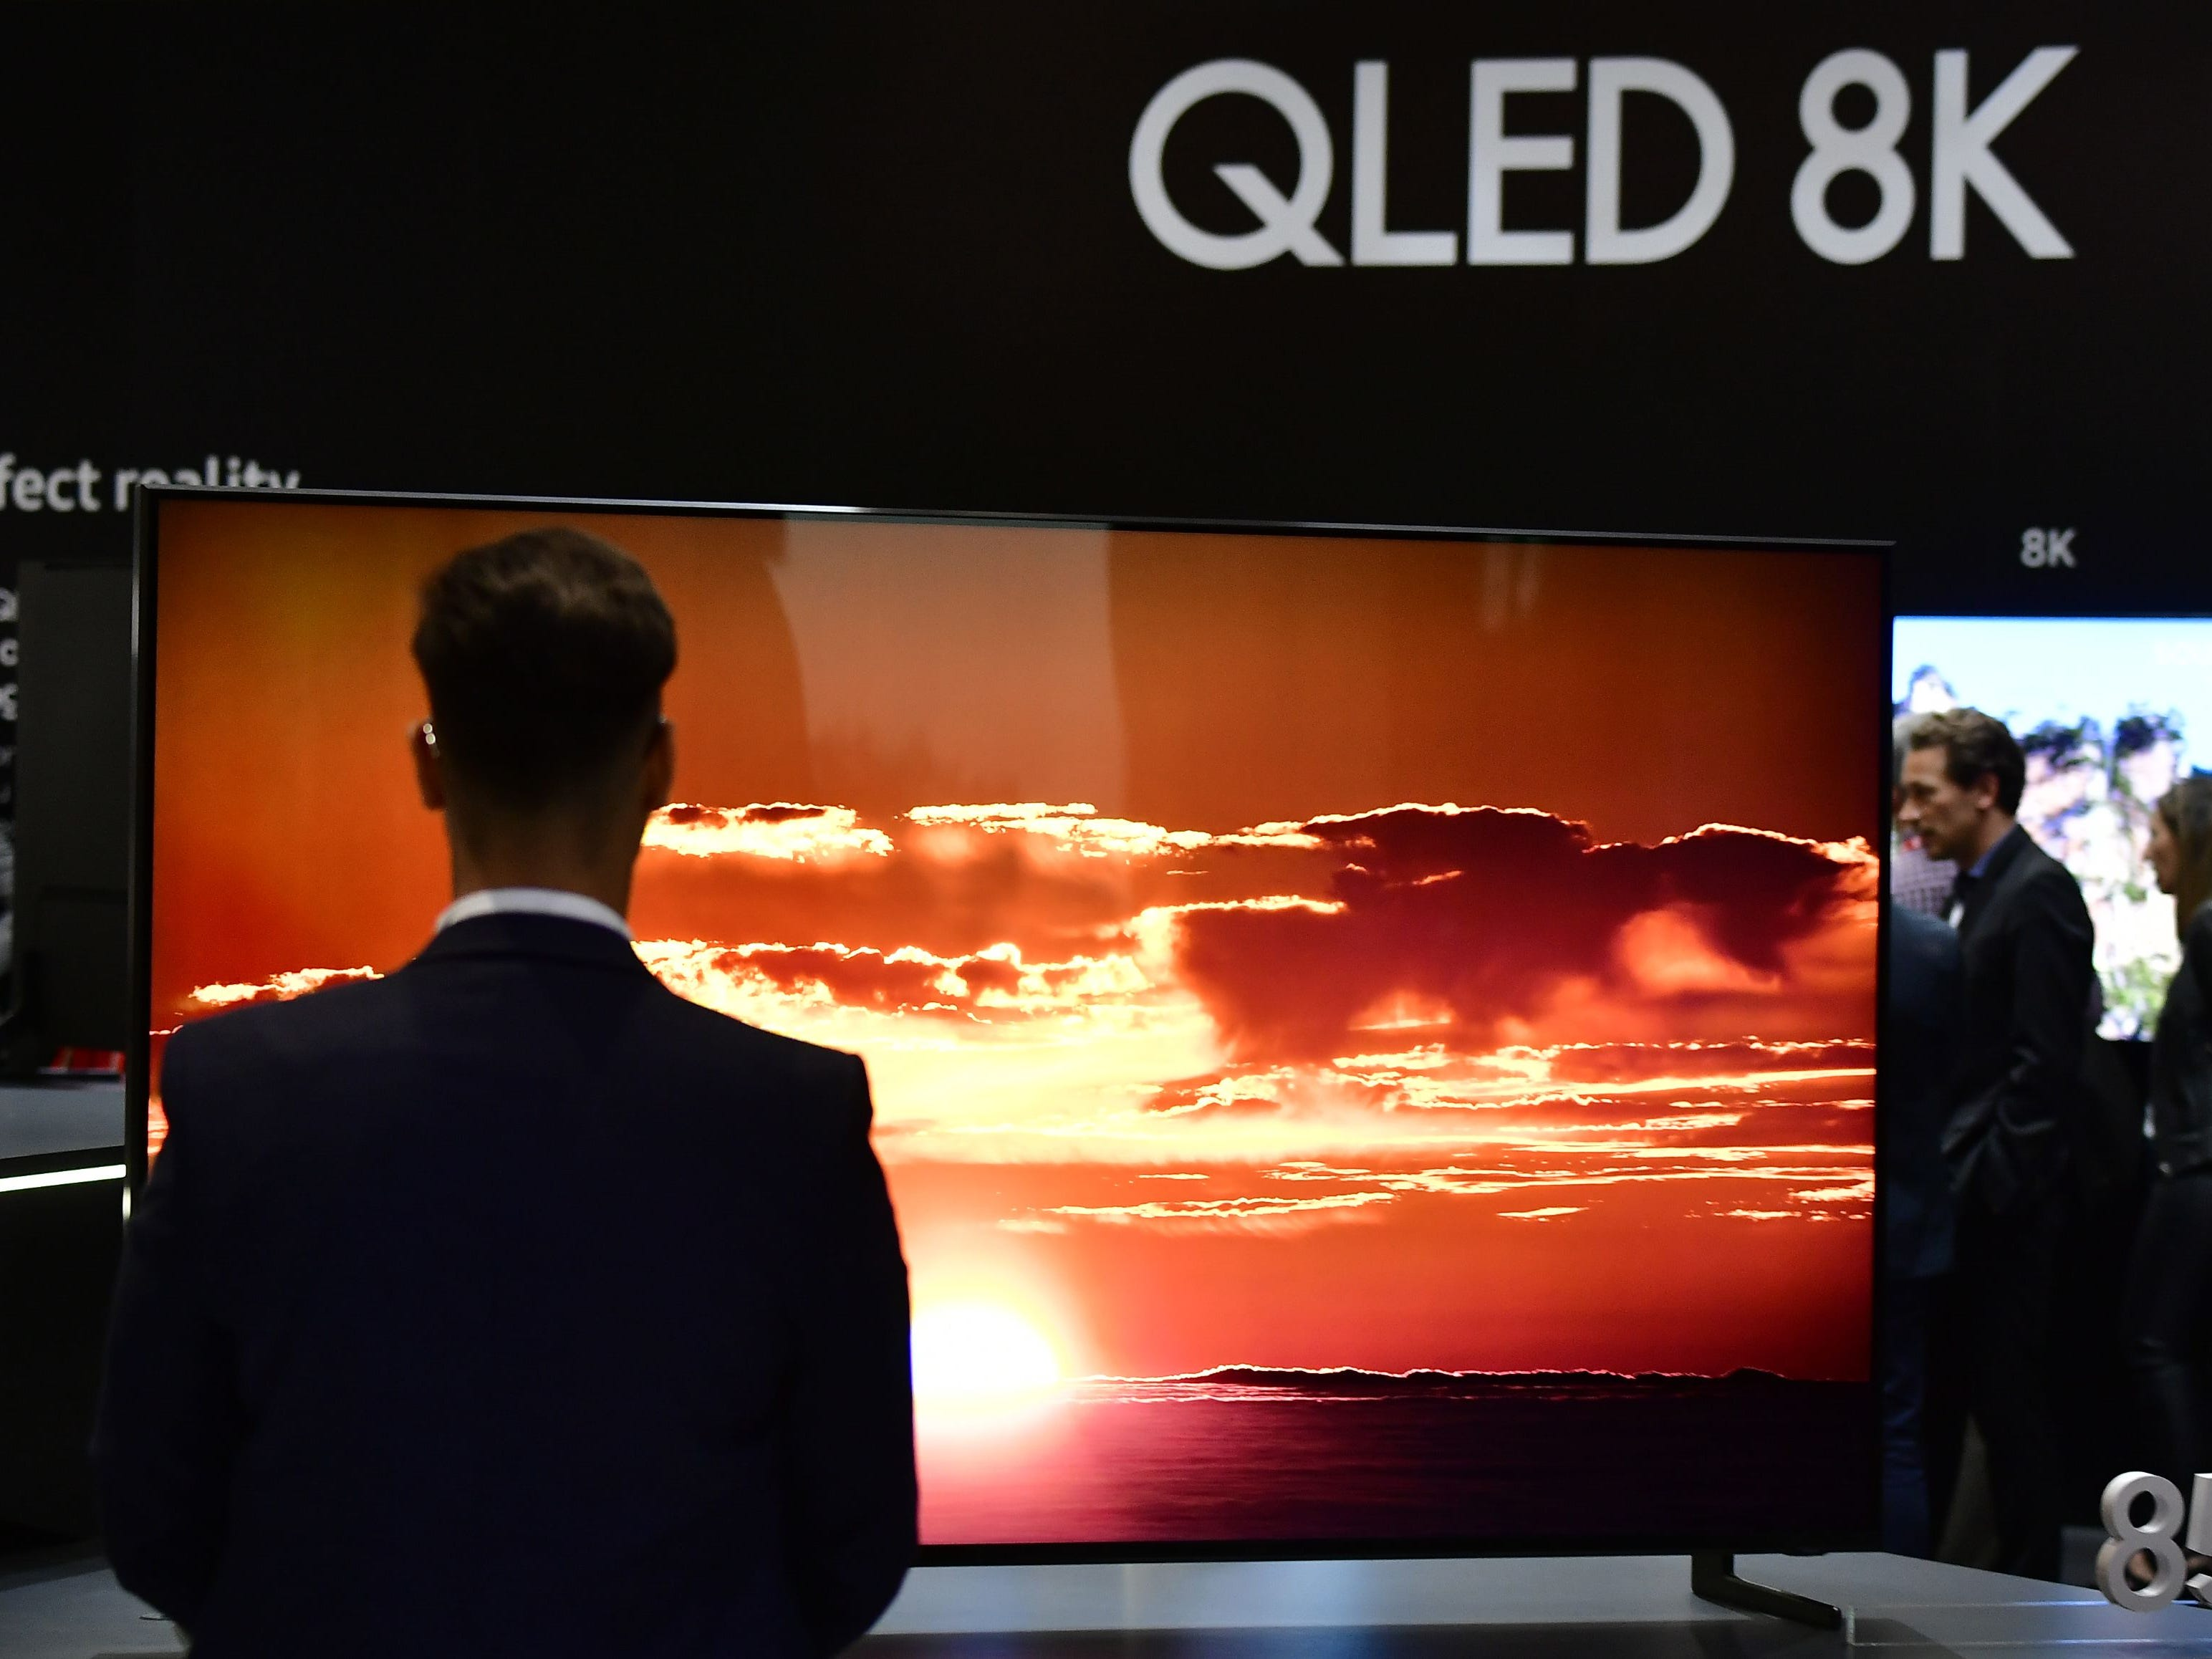 Visitors look at a television installation at the booth of Samsung during a preview day for the IFA, the world's leading trade show for consumer electronics and home appliances, in Berlin on August 30, 2018. (Photo by Tobias SCHWARZ / AFP)TOBIAS SCHWARZ/AFP/Getty Images ORIG FILE ID: AFP_18P7E2